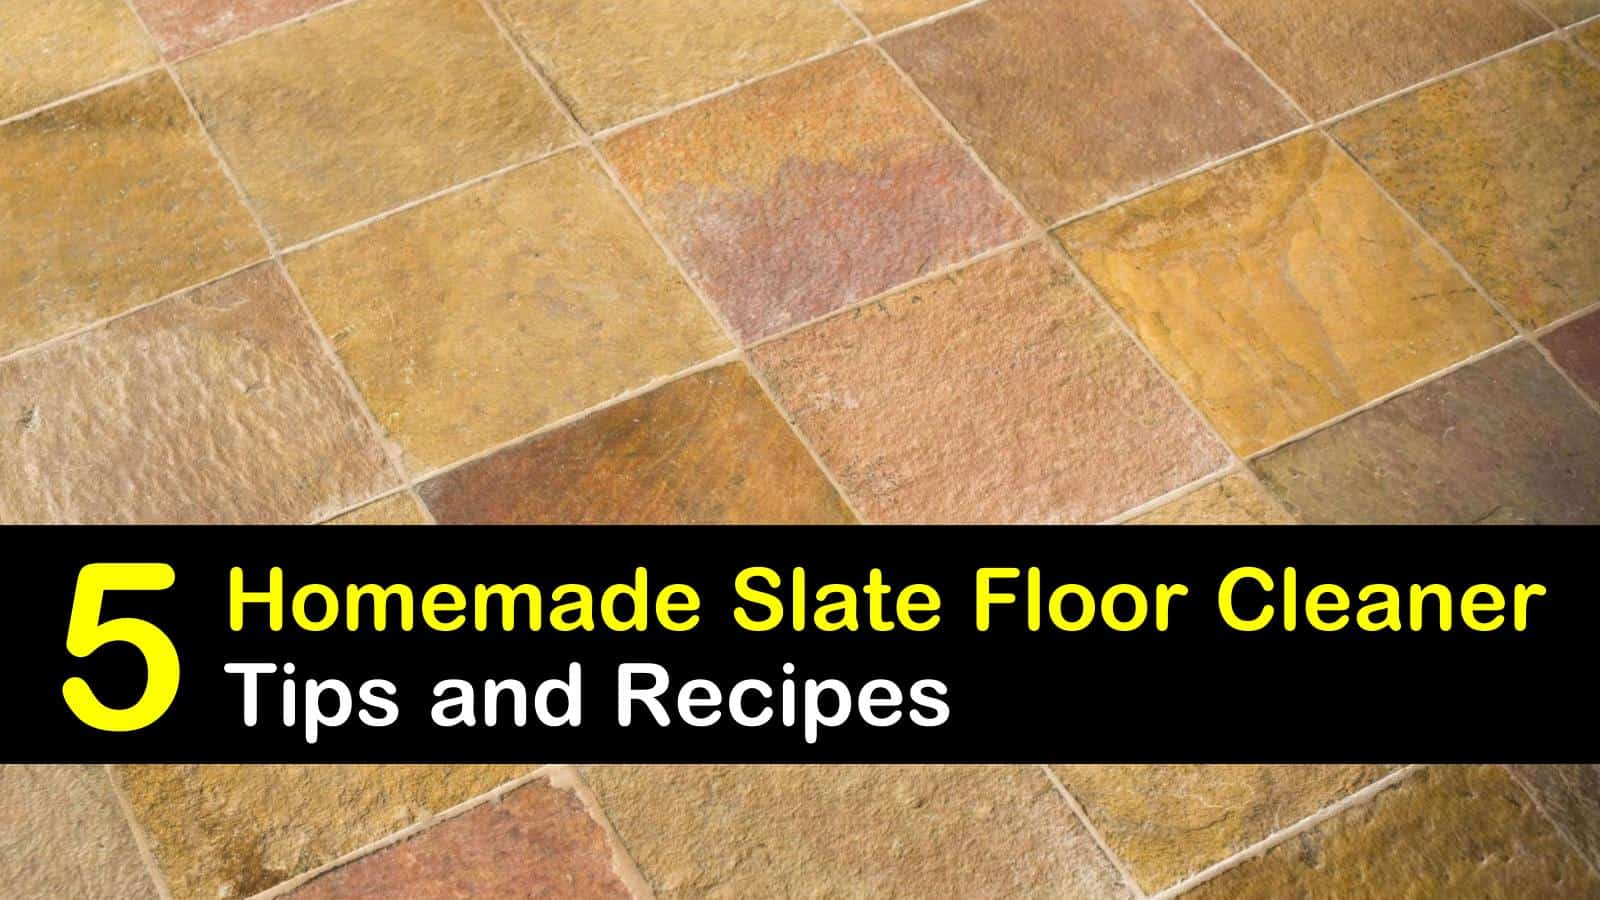 homemade slate floor cleaner titleimg1